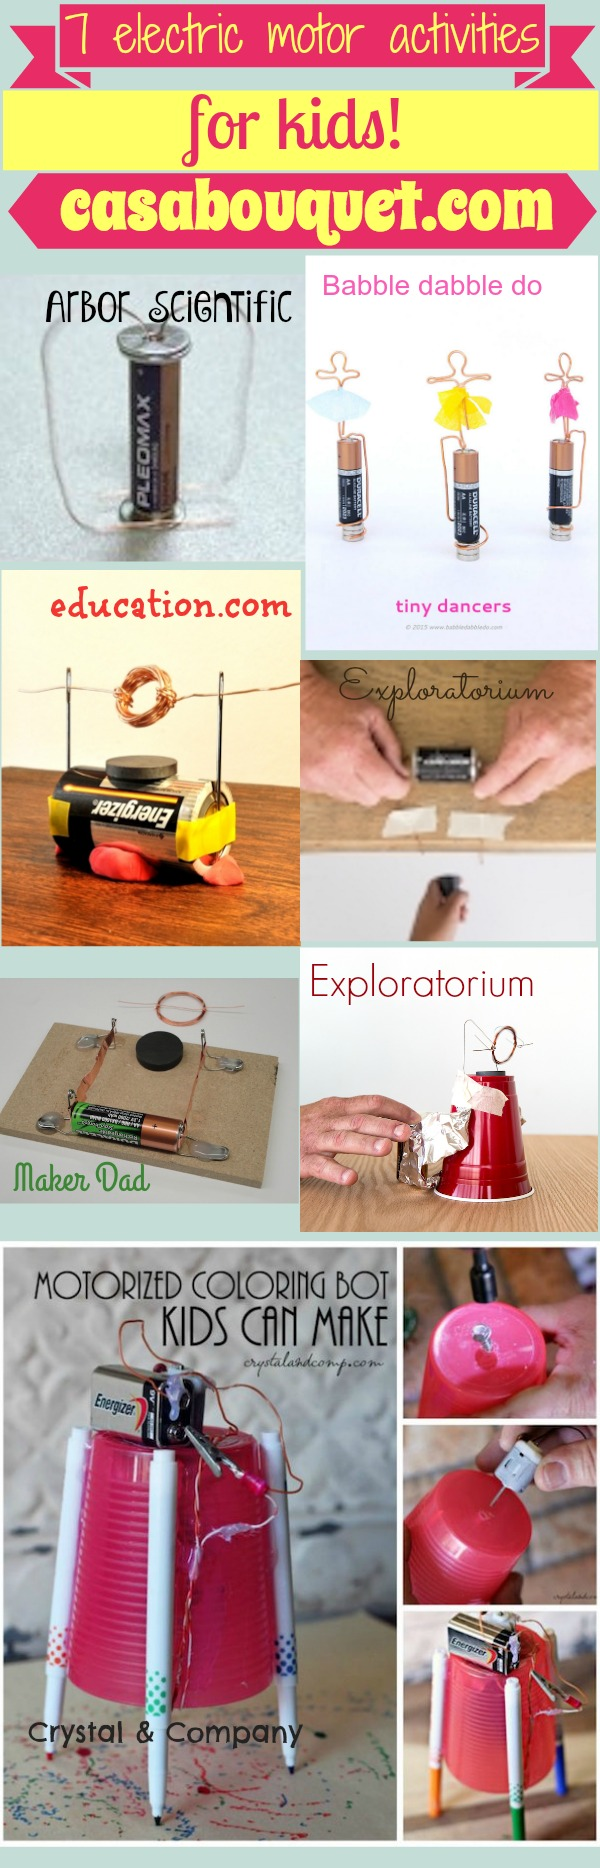 7 electric motor activities use current and magnets to teach energy and electromagnetism. Simple and homopolar motors included.